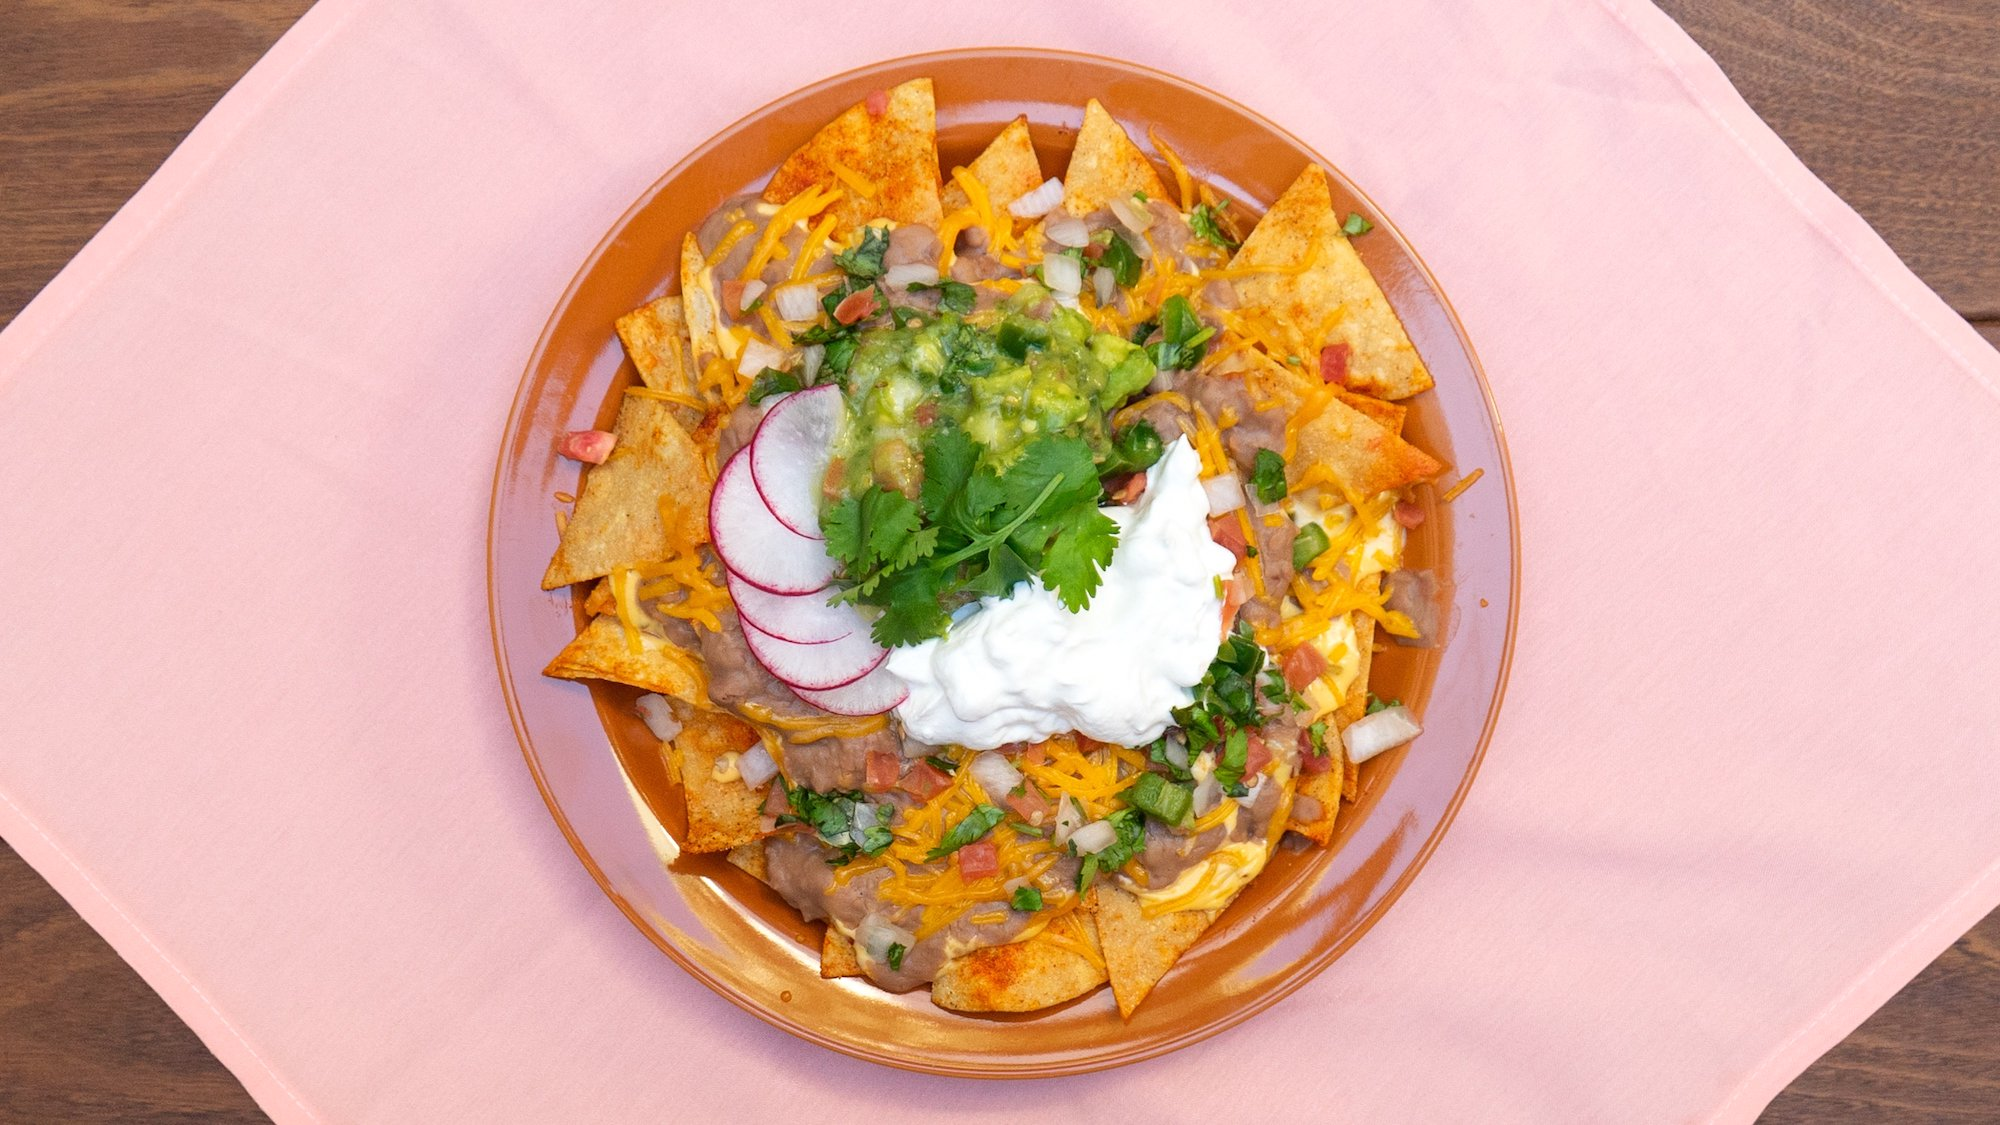 An overhead bowl of cheesy nachos with beans and sour cream, on a pink table.